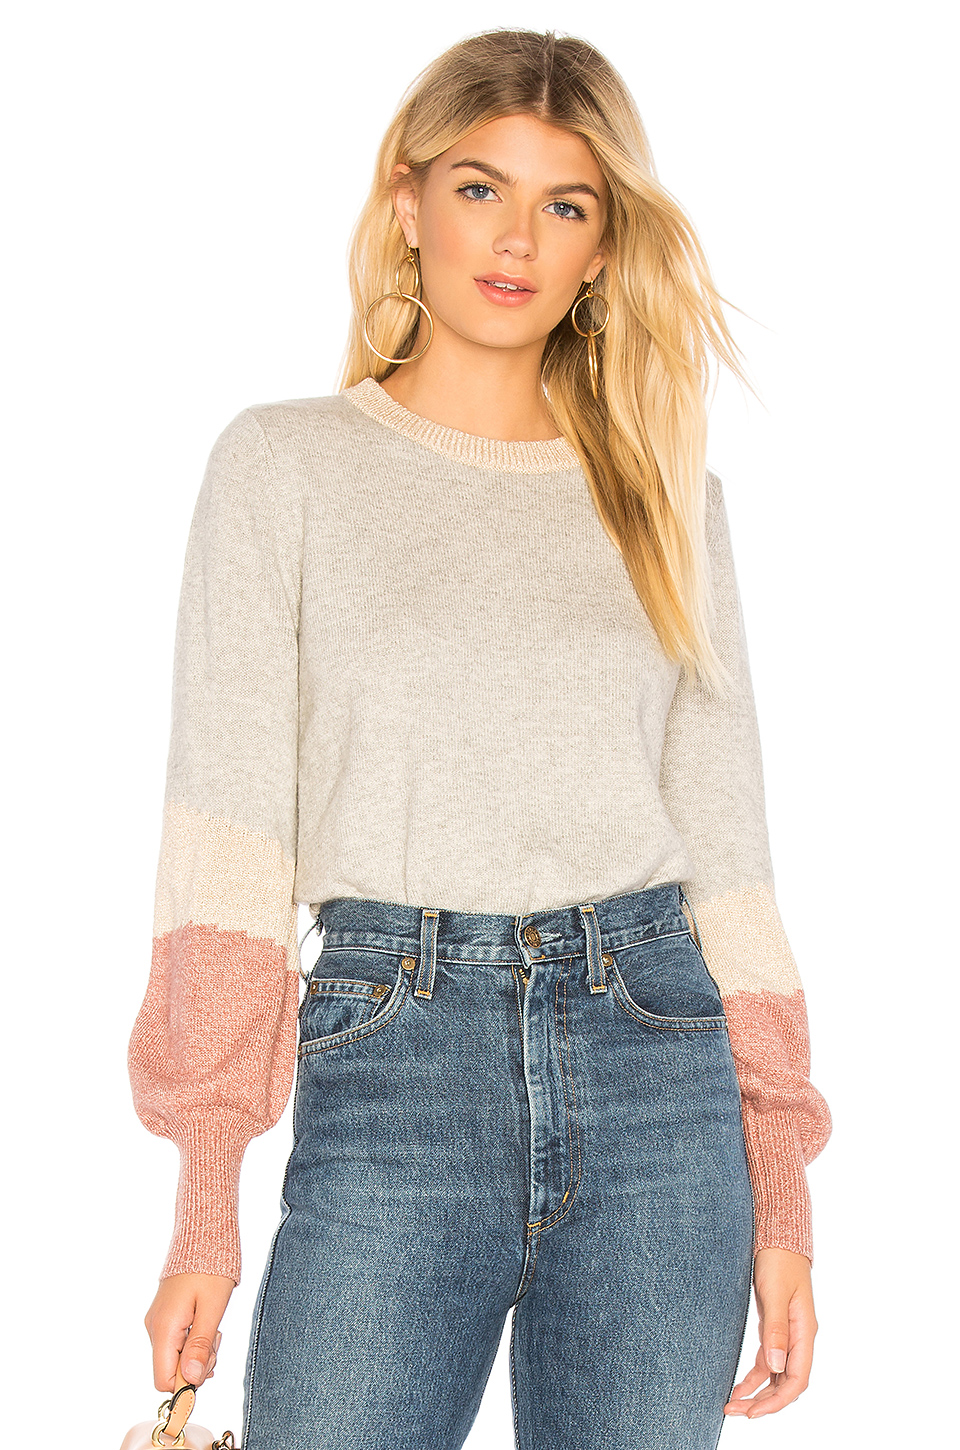 Cupcakes And Cashmere Grenville Balloon Sleeve Sweater, Heather Grey